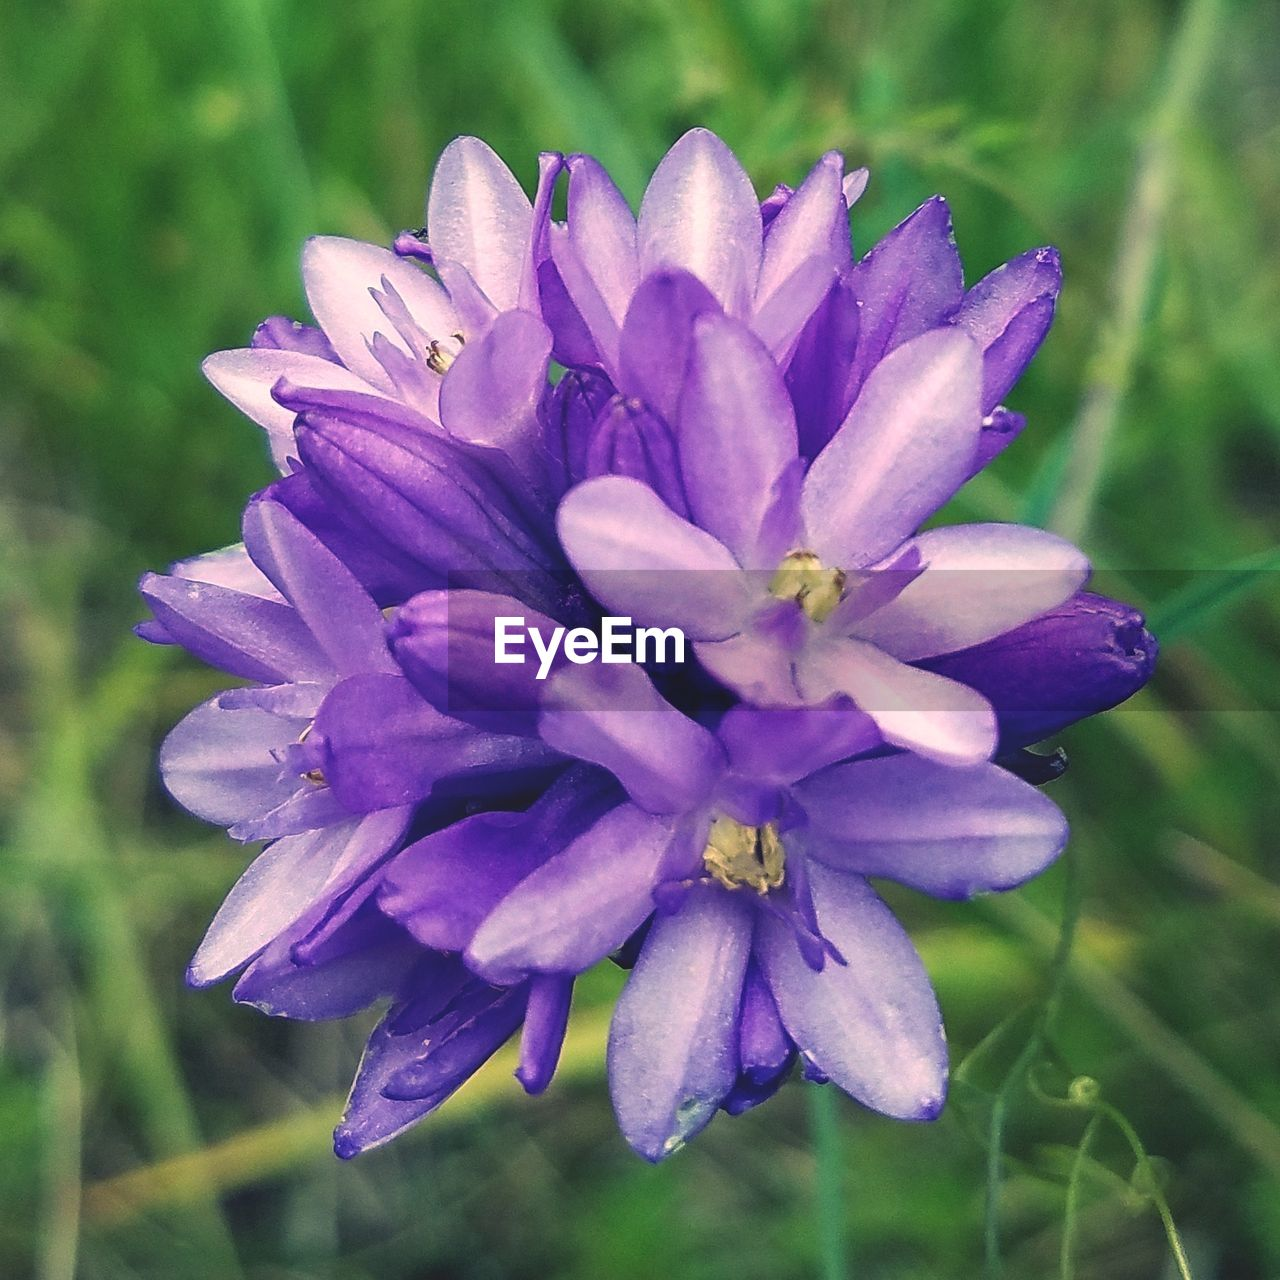 flower, beauty in nature, nature, petal, purple, fragility, growth, no people, plant, freshness, flower head, close-up, outdoors, day